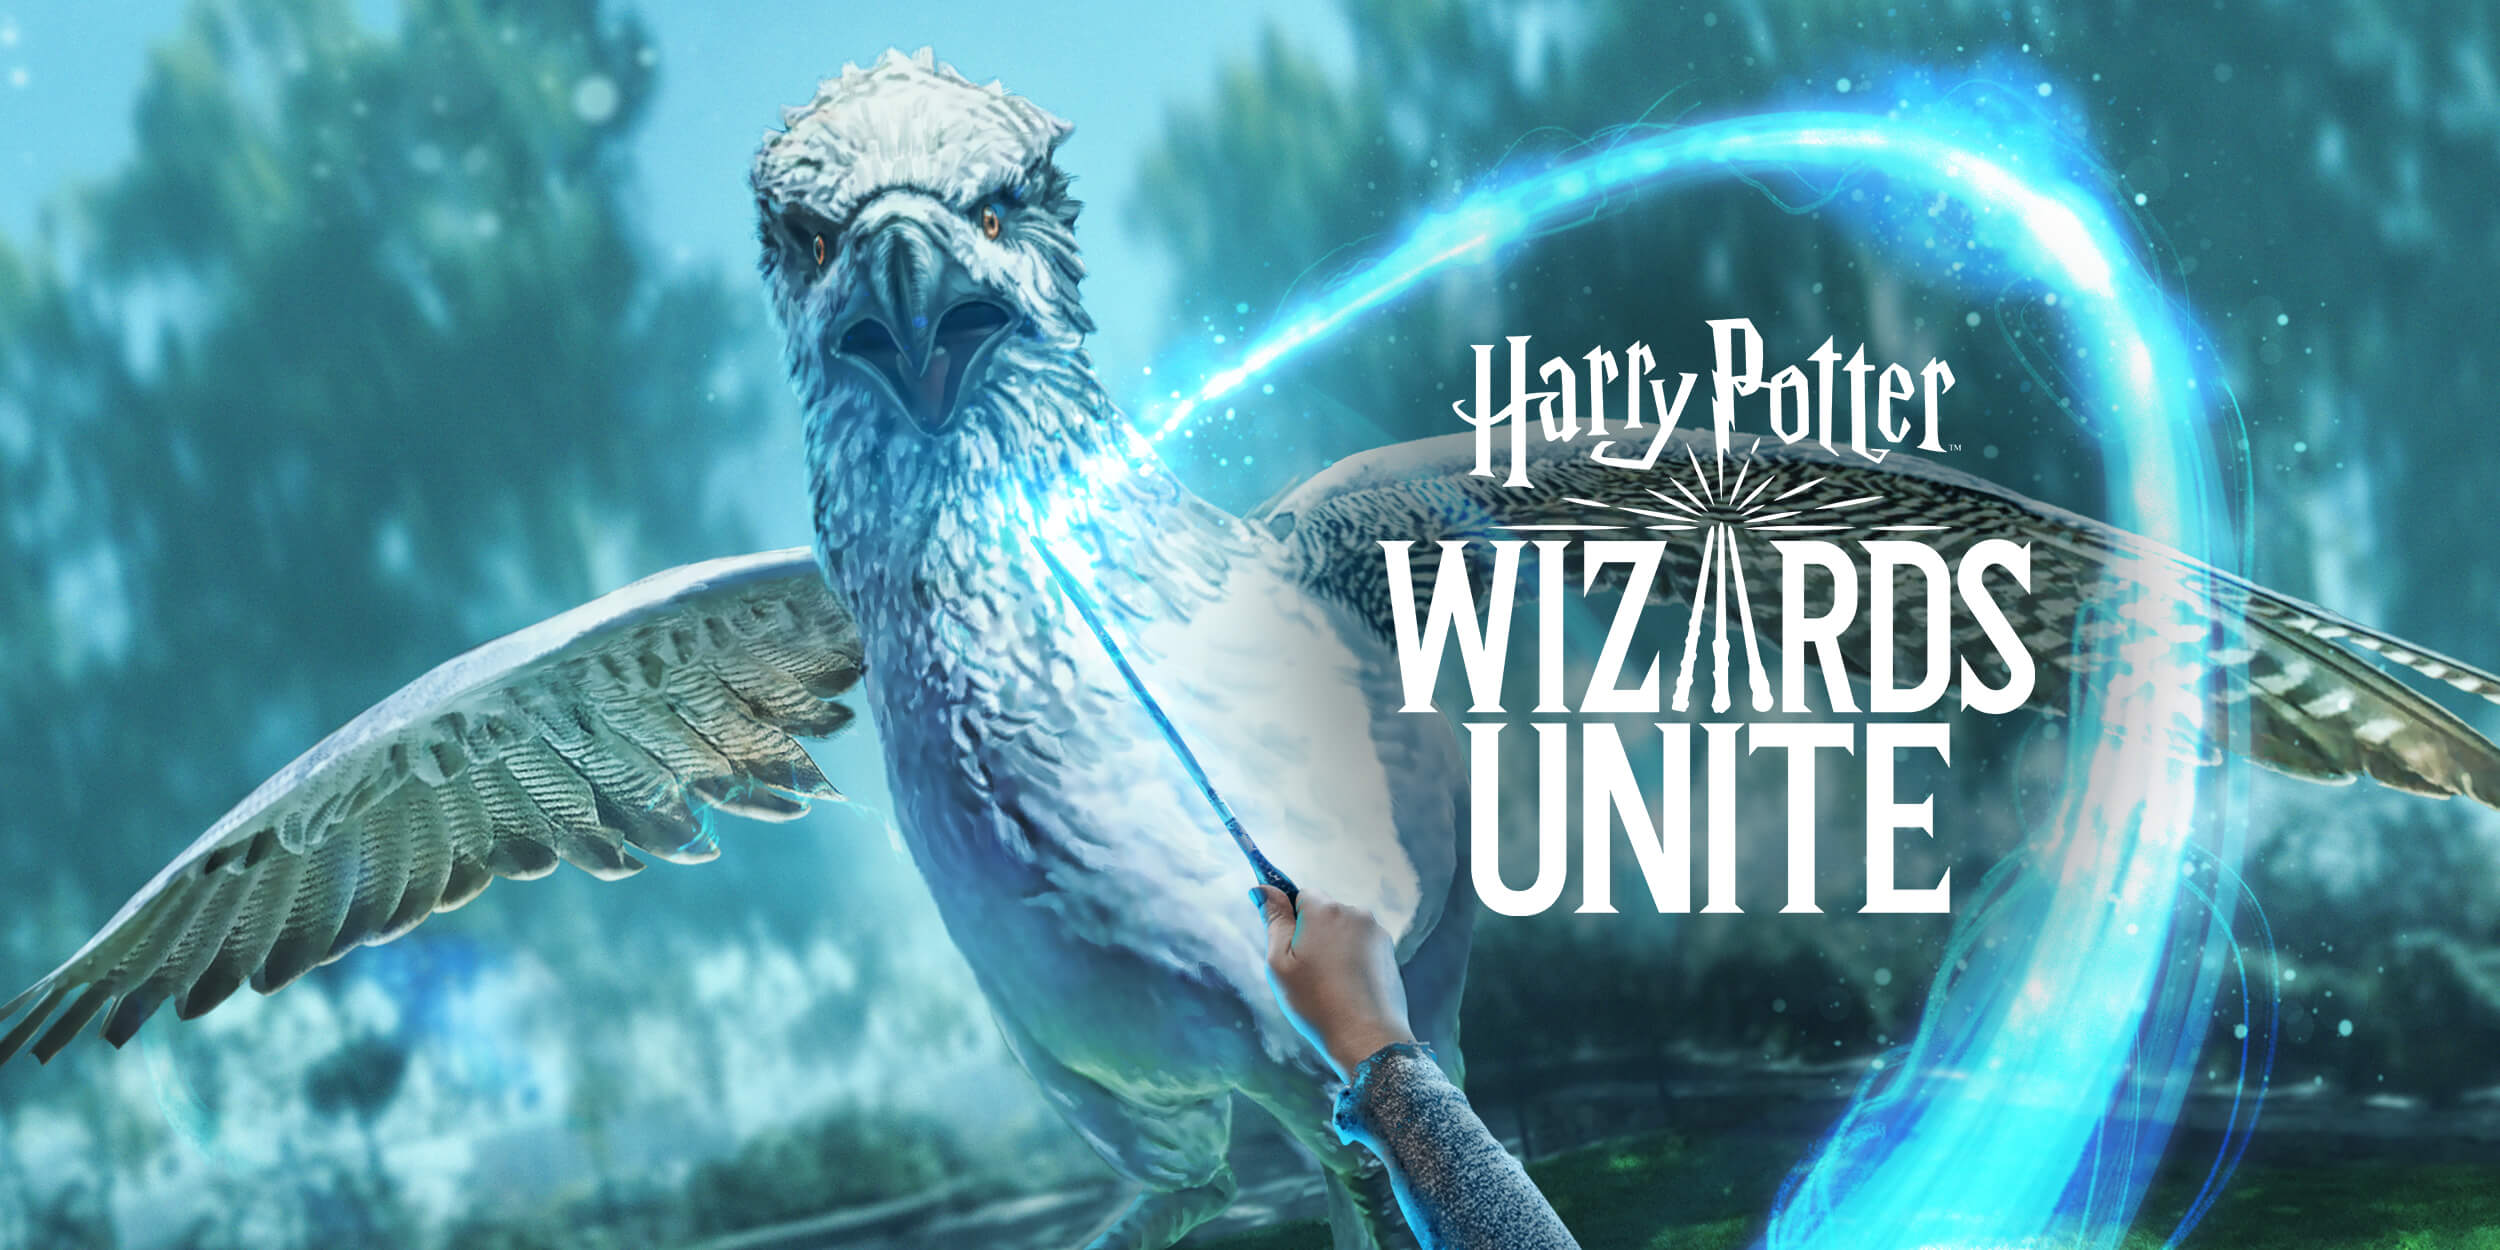 First Official Images Released for Harry Potter: Wizards Unite